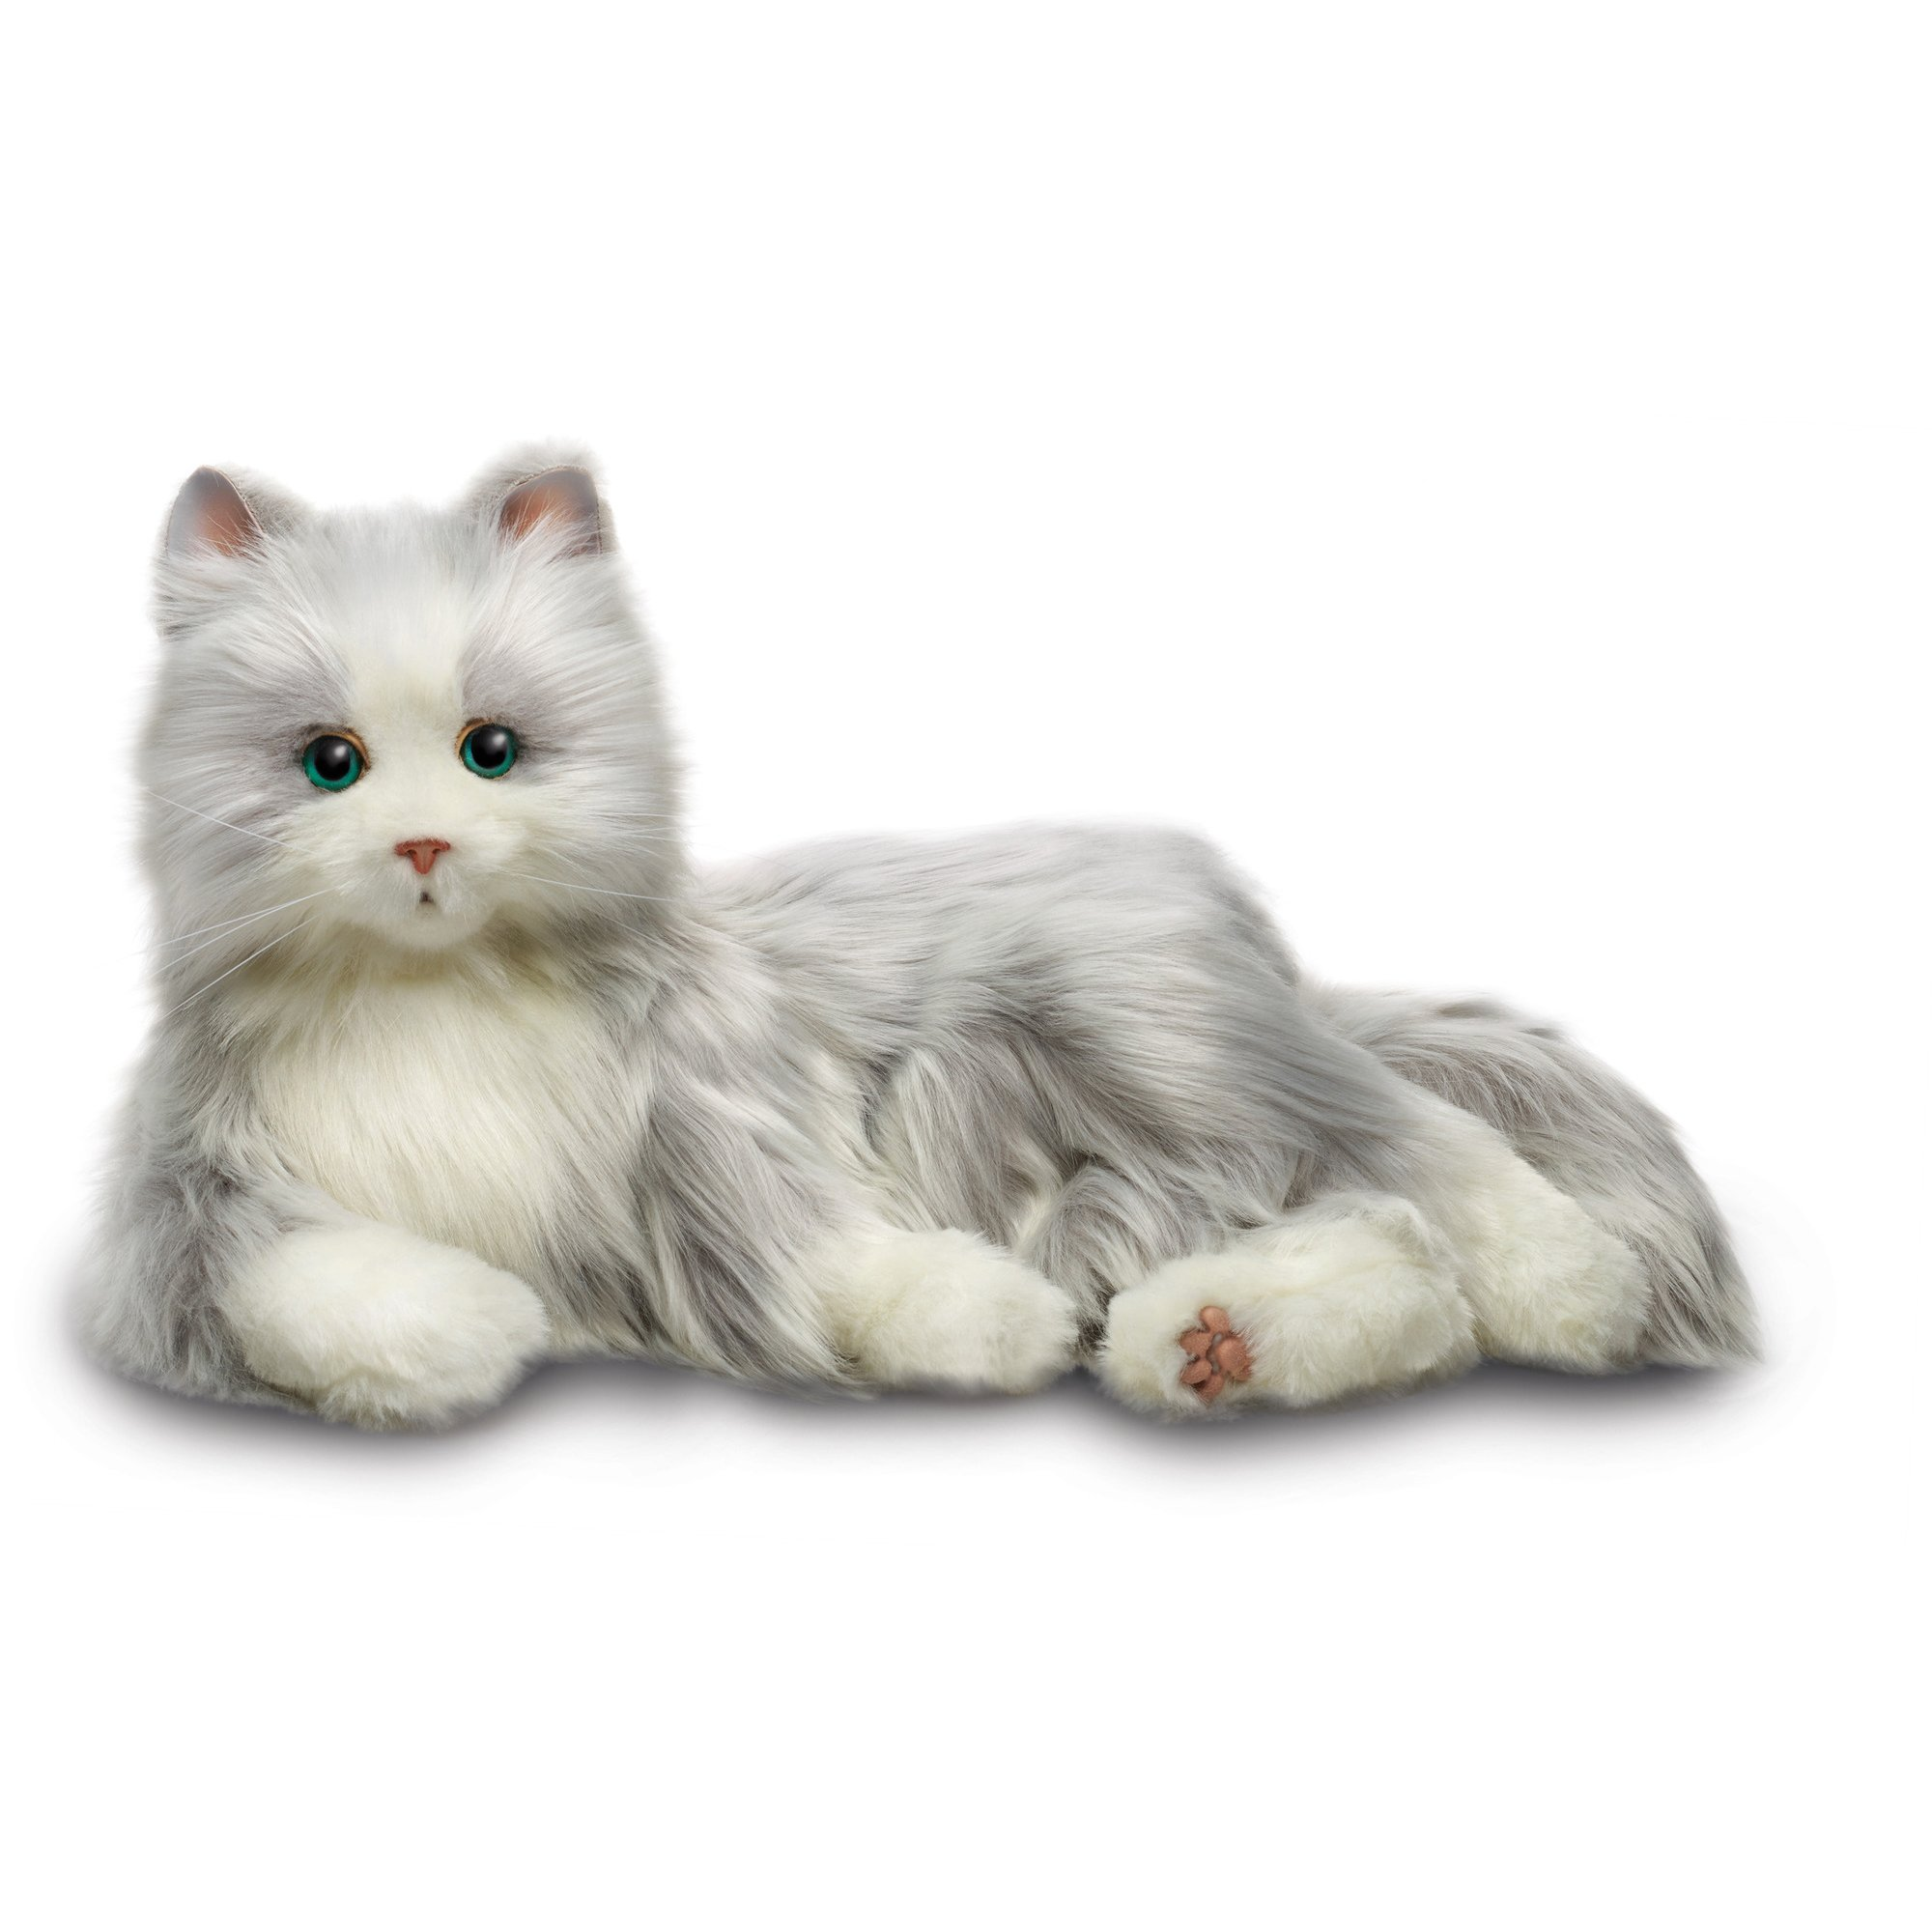 Ageless Innovation | Joy For All Companion Pets | Silver Cat with White Mitts | Lifelike & Realistic | Comfort, Joy & Companionship by JOY FOR ALL